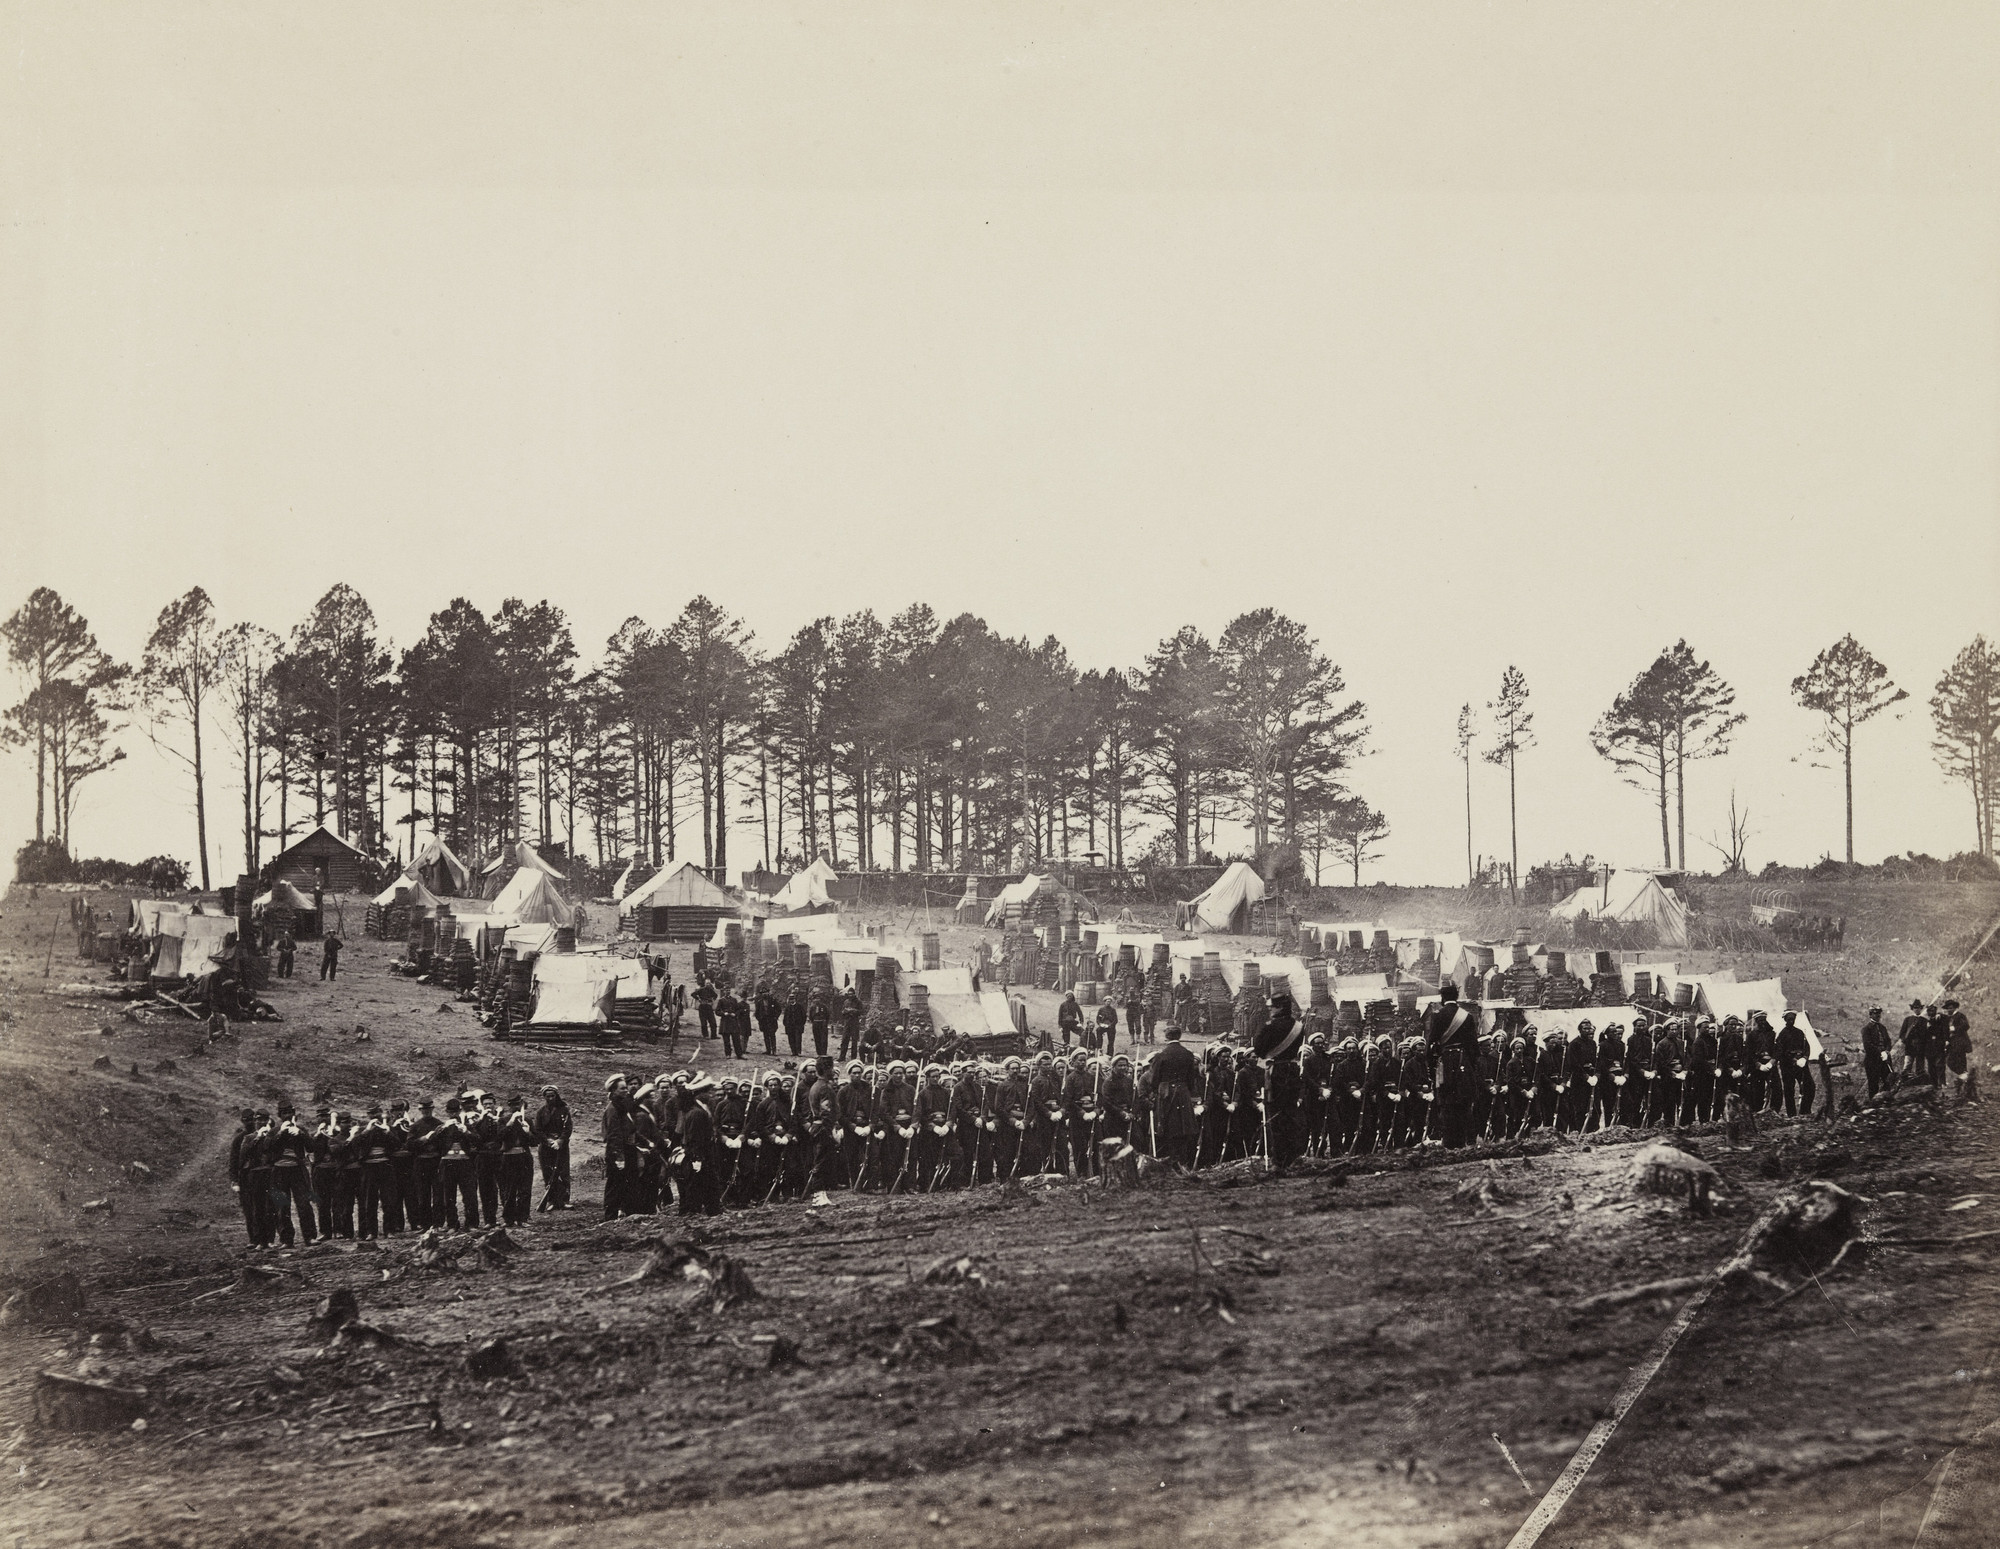 Alexander Gardner, Timothy O'Sullivan. Guard Mount, Head-Quarters Army of the Potomac. February, 1864